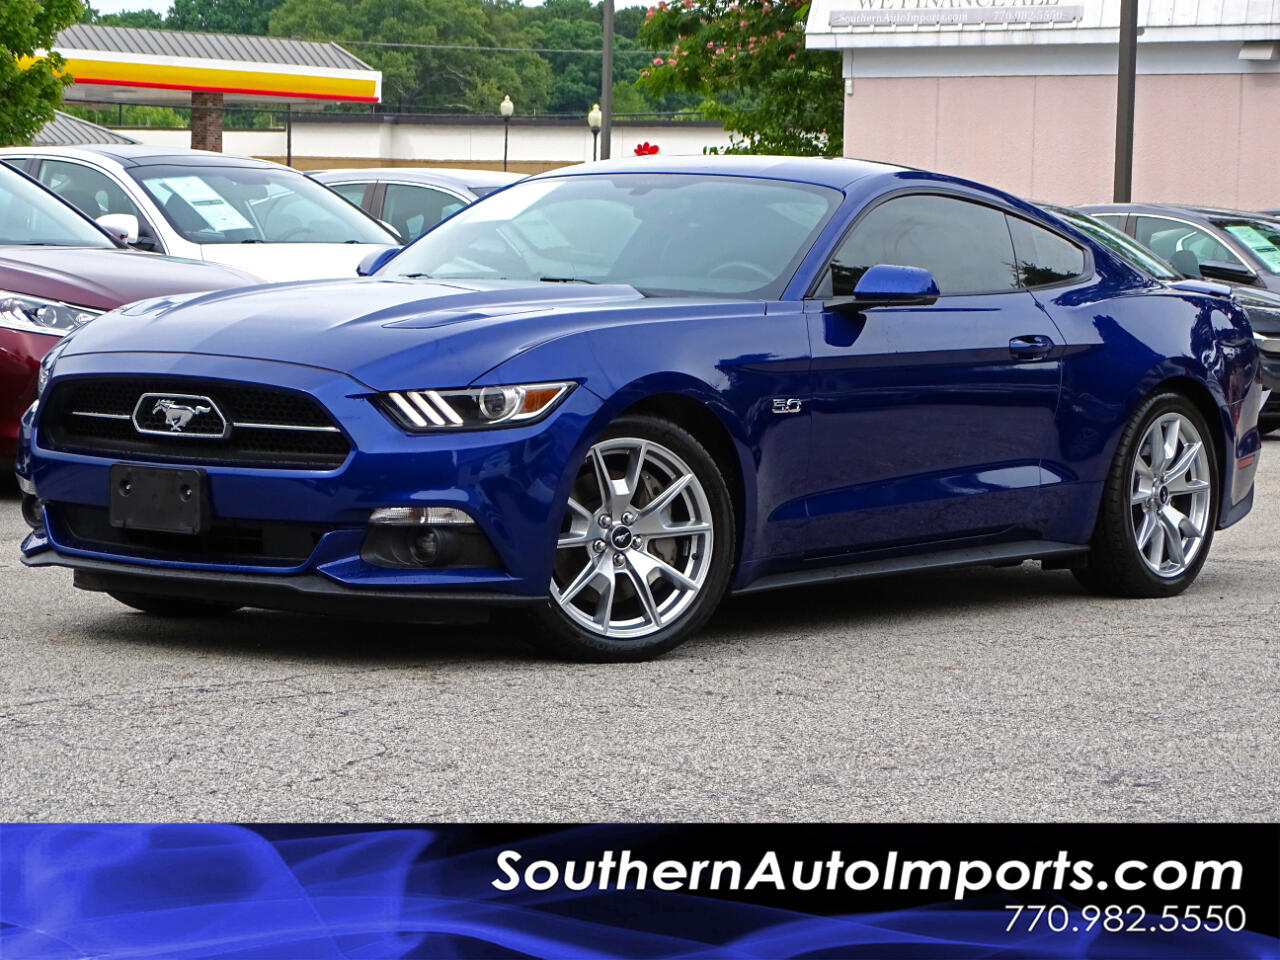 2015 Ford Mustang 50th Anniversary GT Premium